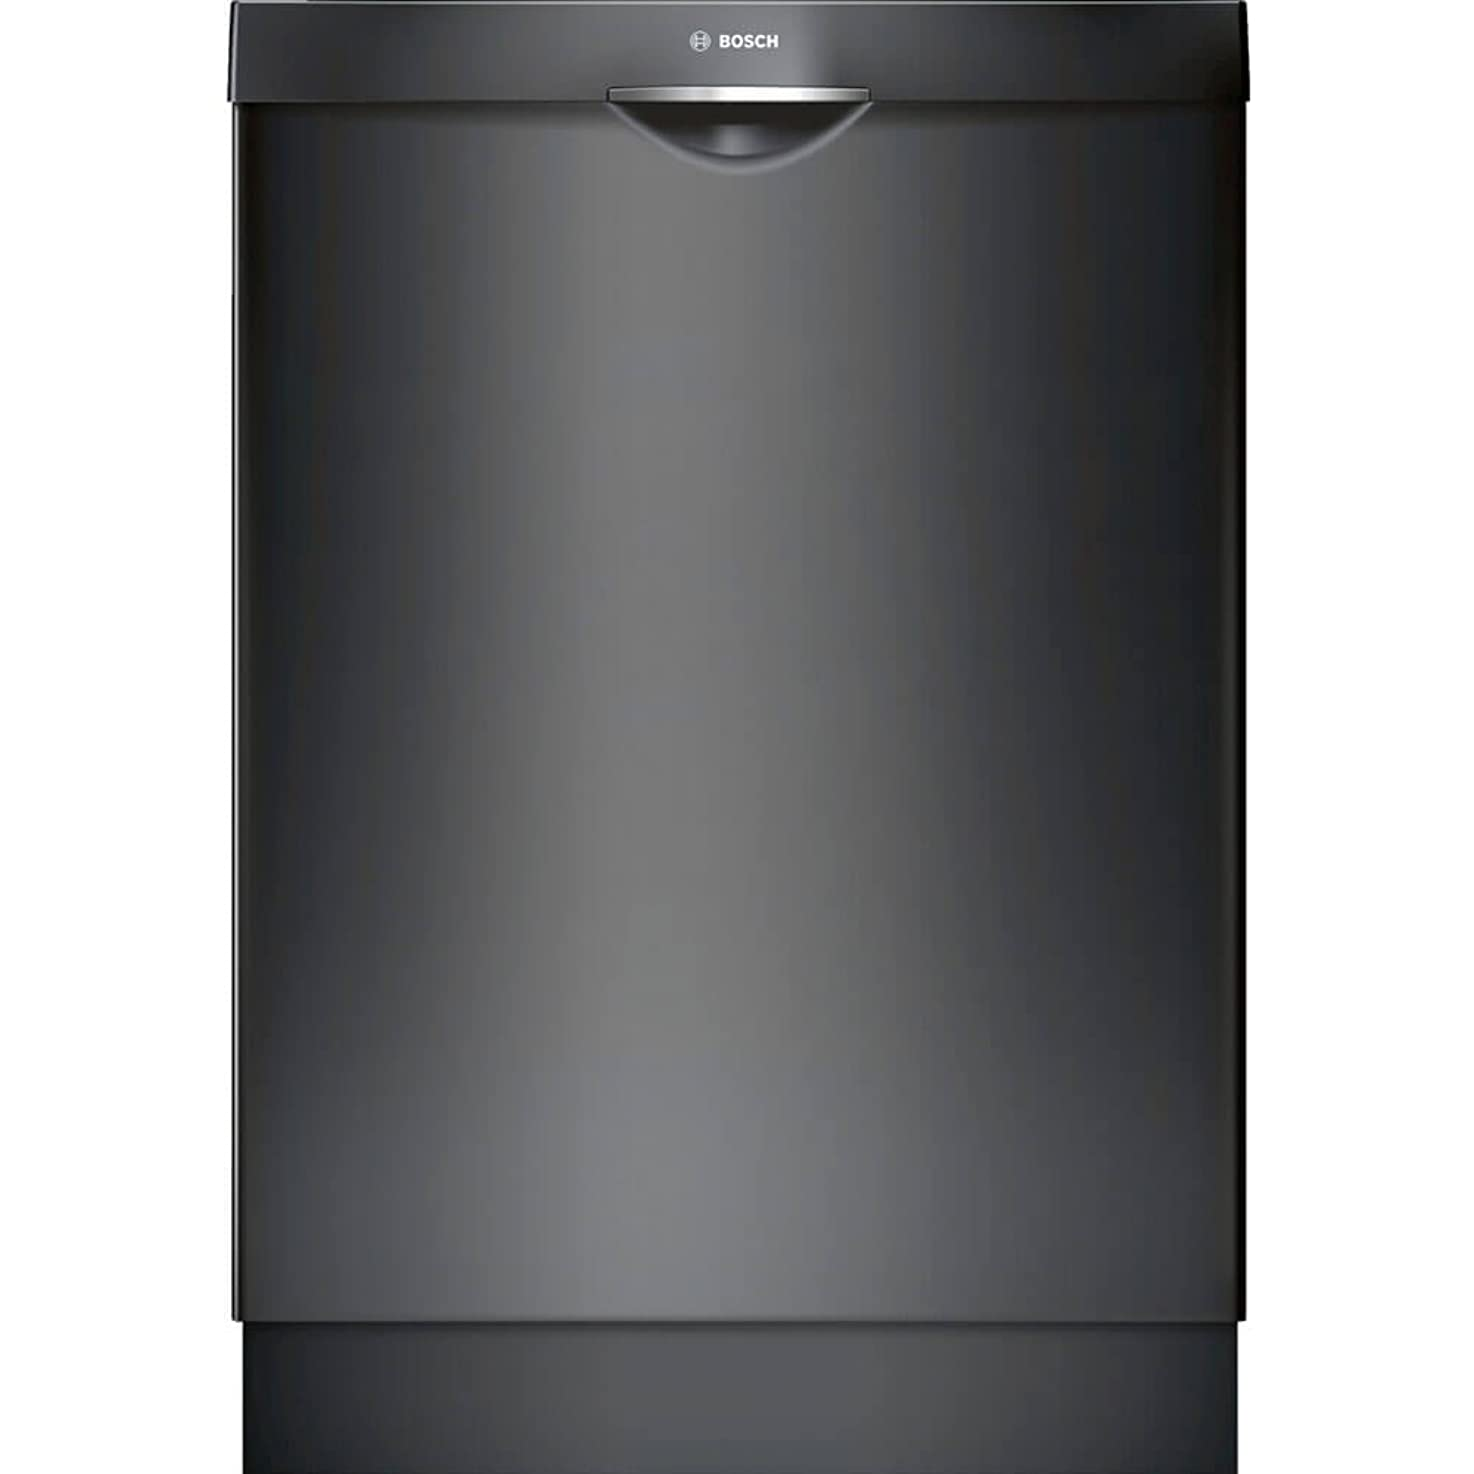 Bosch SHS863WD6N 300 Series Built In Dishwasher with 5 Wash Cycles, 16 Place Settings, 3rd Rack, SpeedPerfect, RackMatic in Black ziybbprupfzjl2